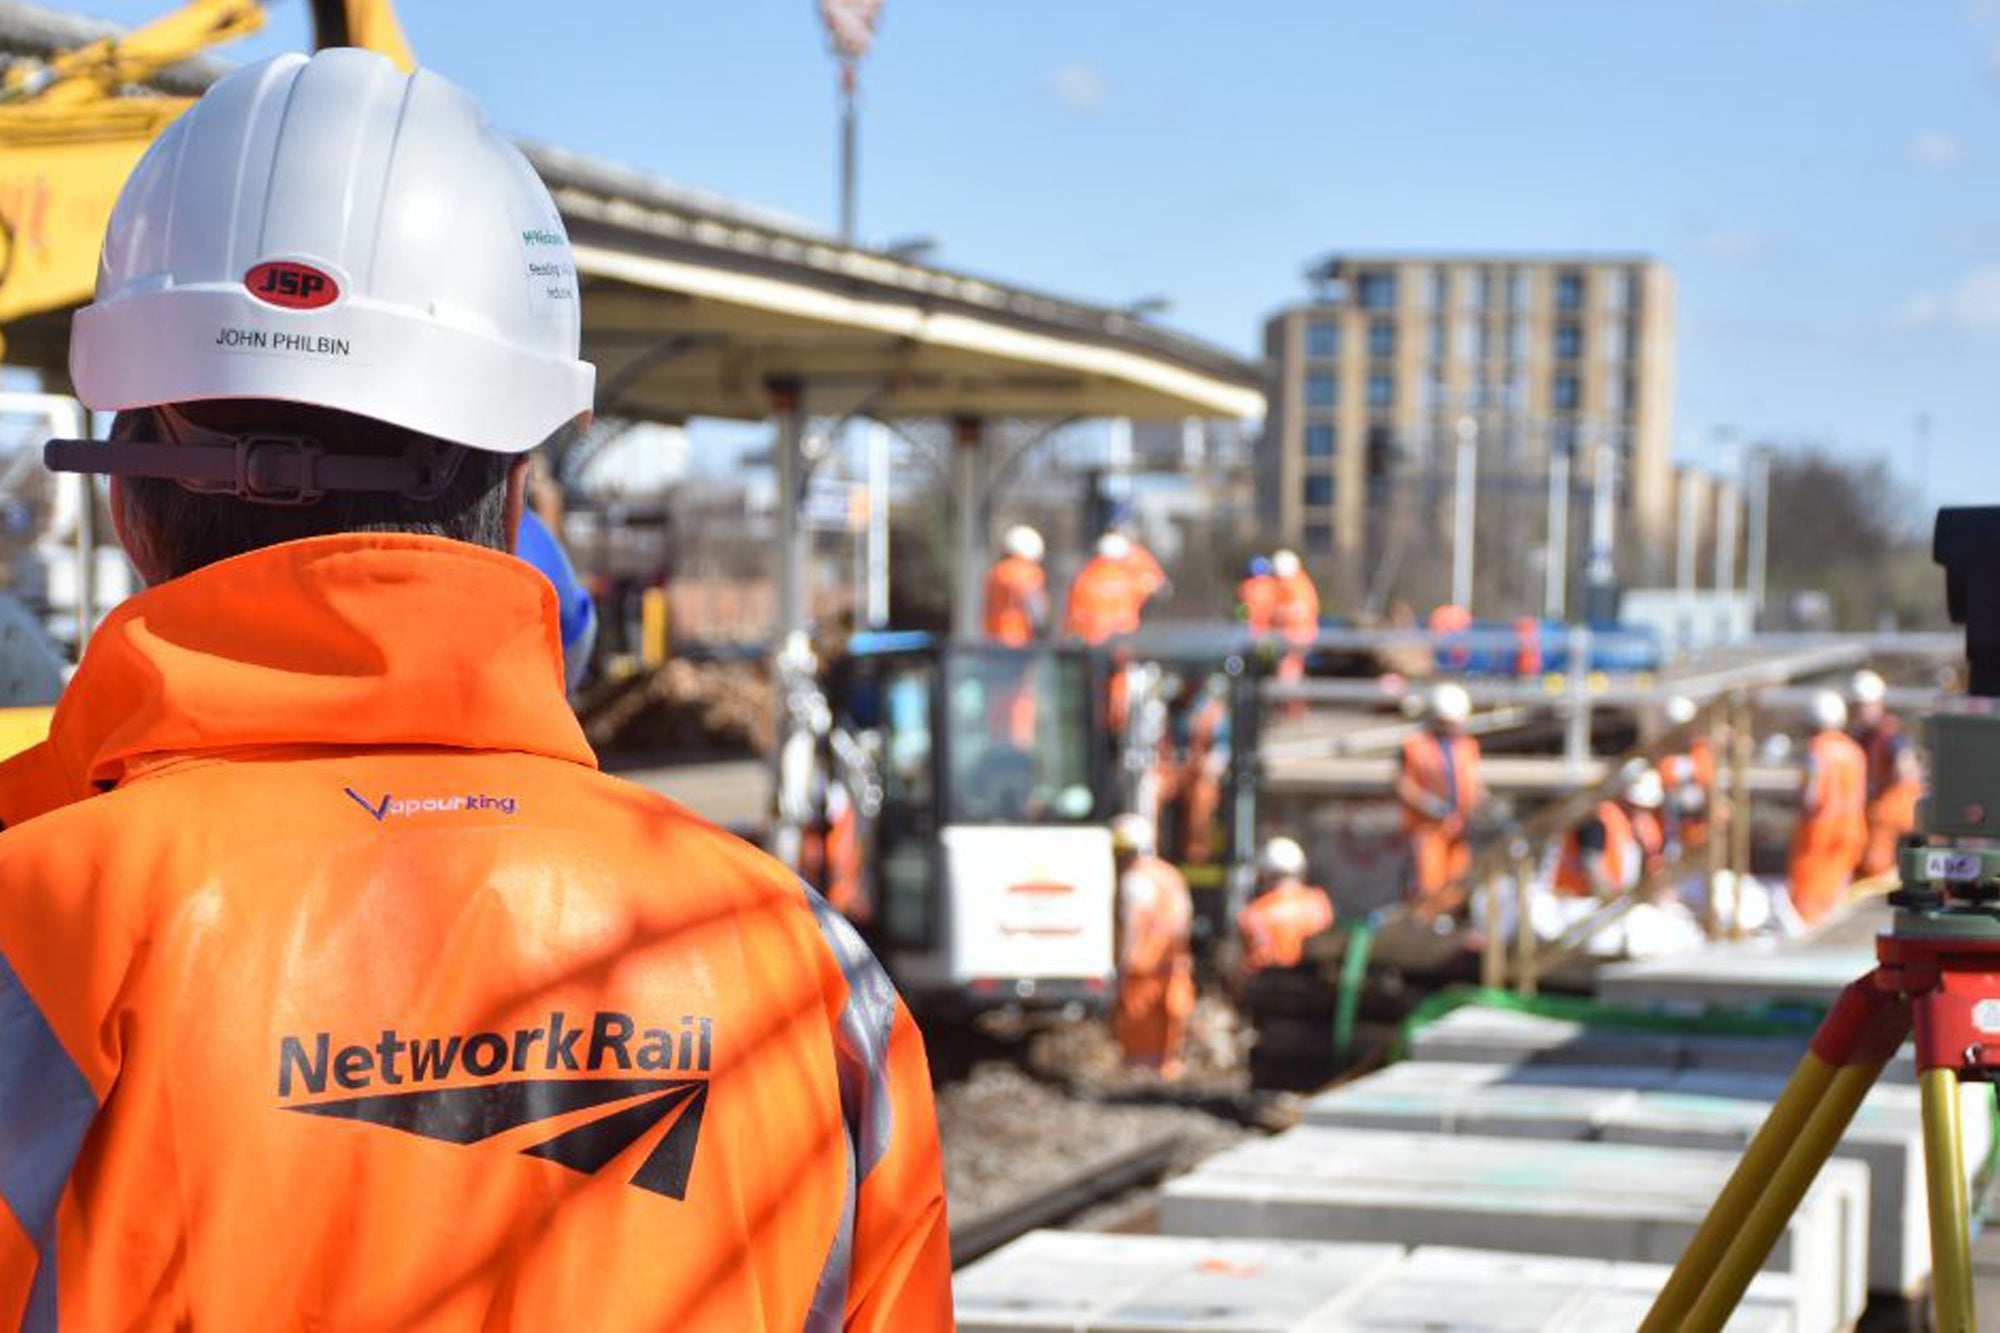 Case study with Network Rail